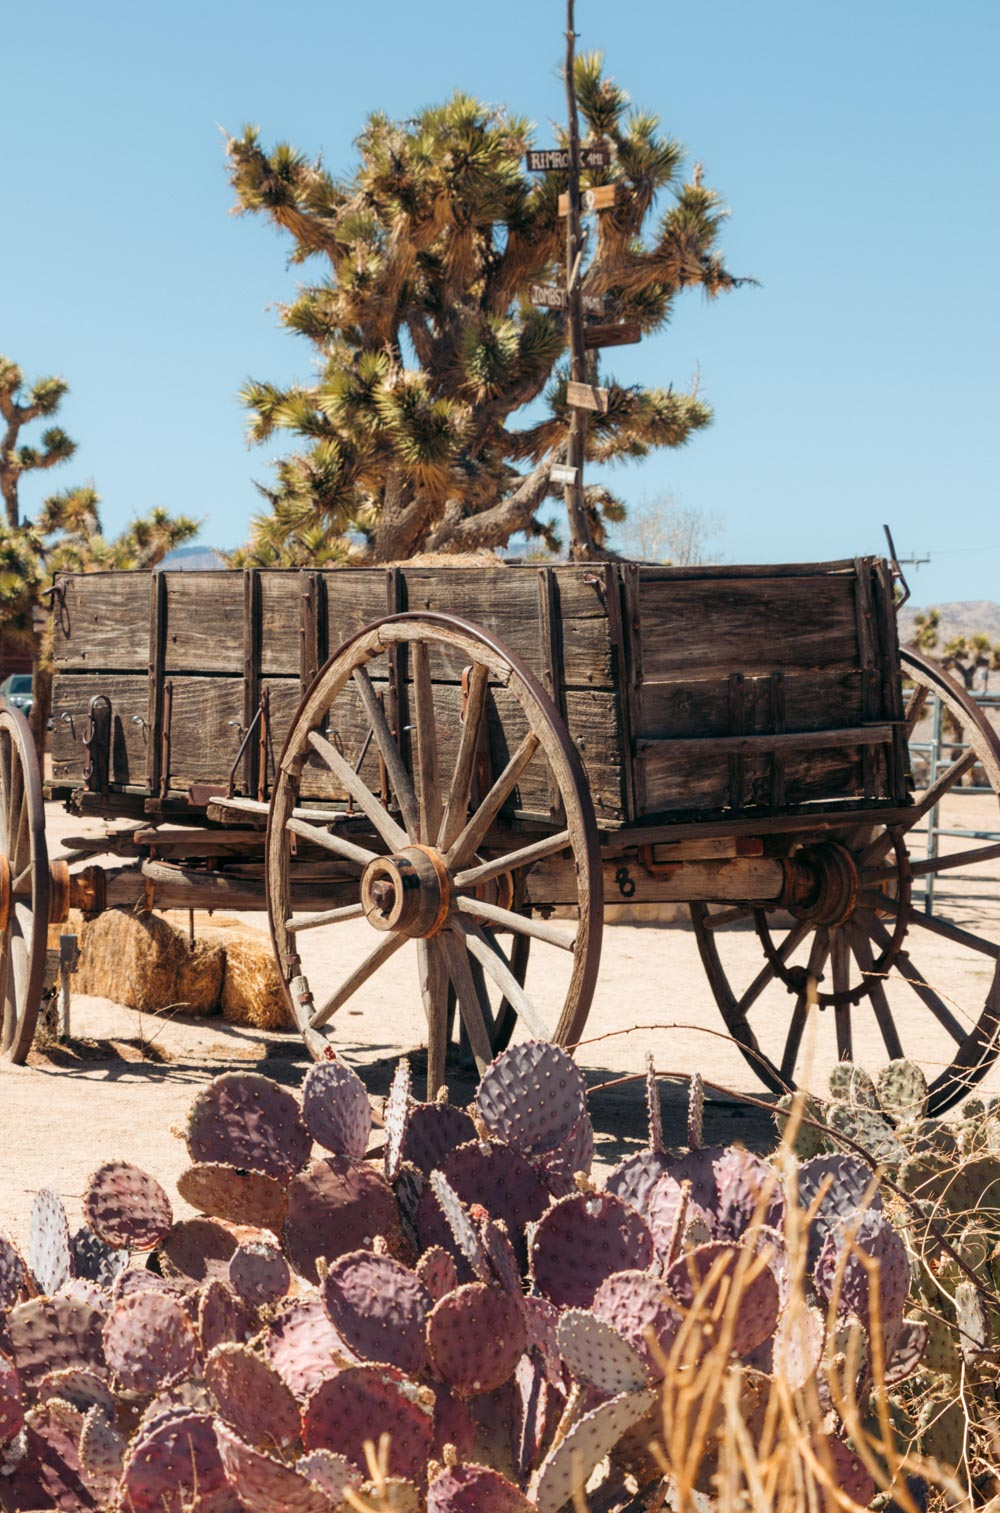 The Old West - Roads and Destinations